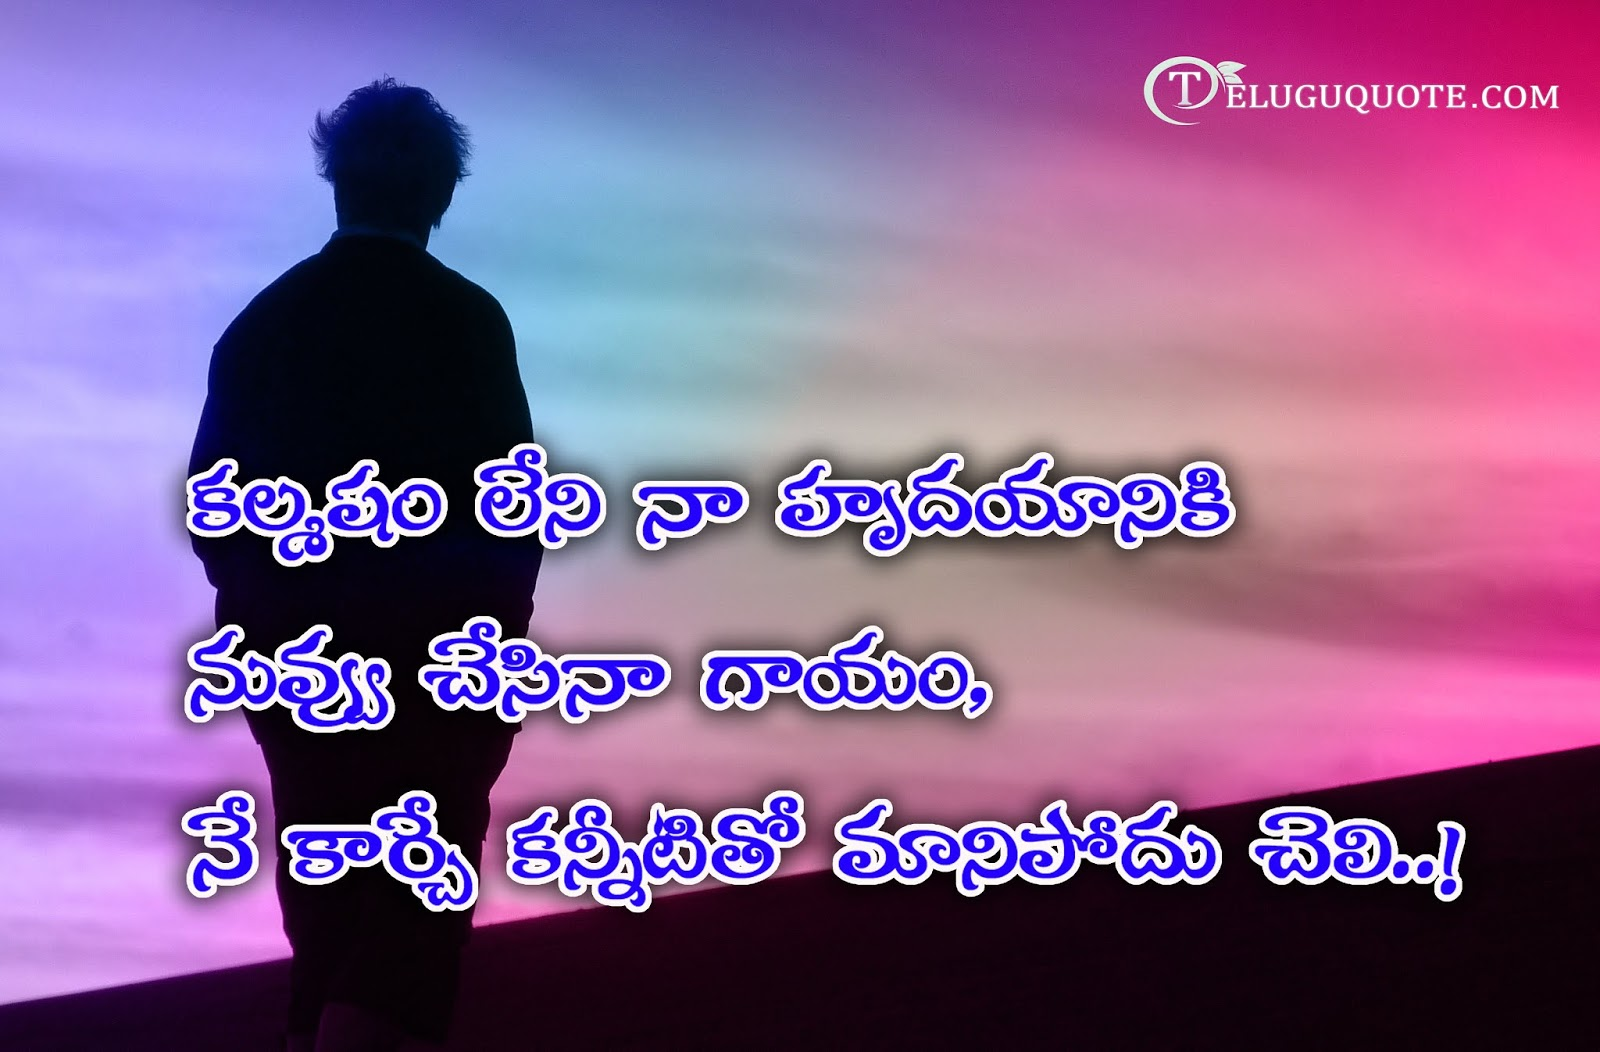 Telugu Sad Love Failure Quotes Telugu Quotes